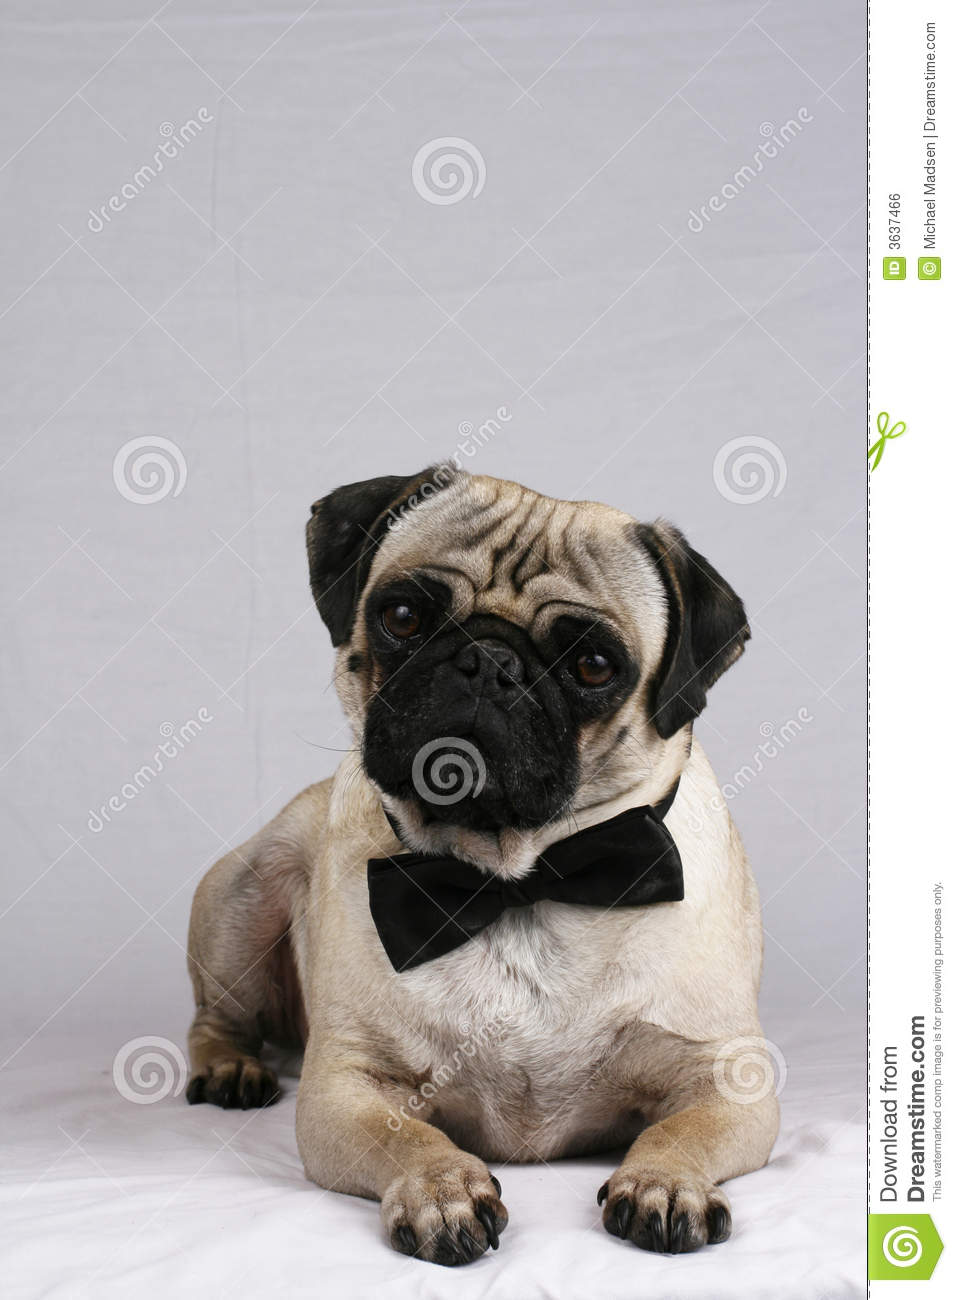 Cost U Less >> Dressed up Pug stock photo. Image of black, space ...